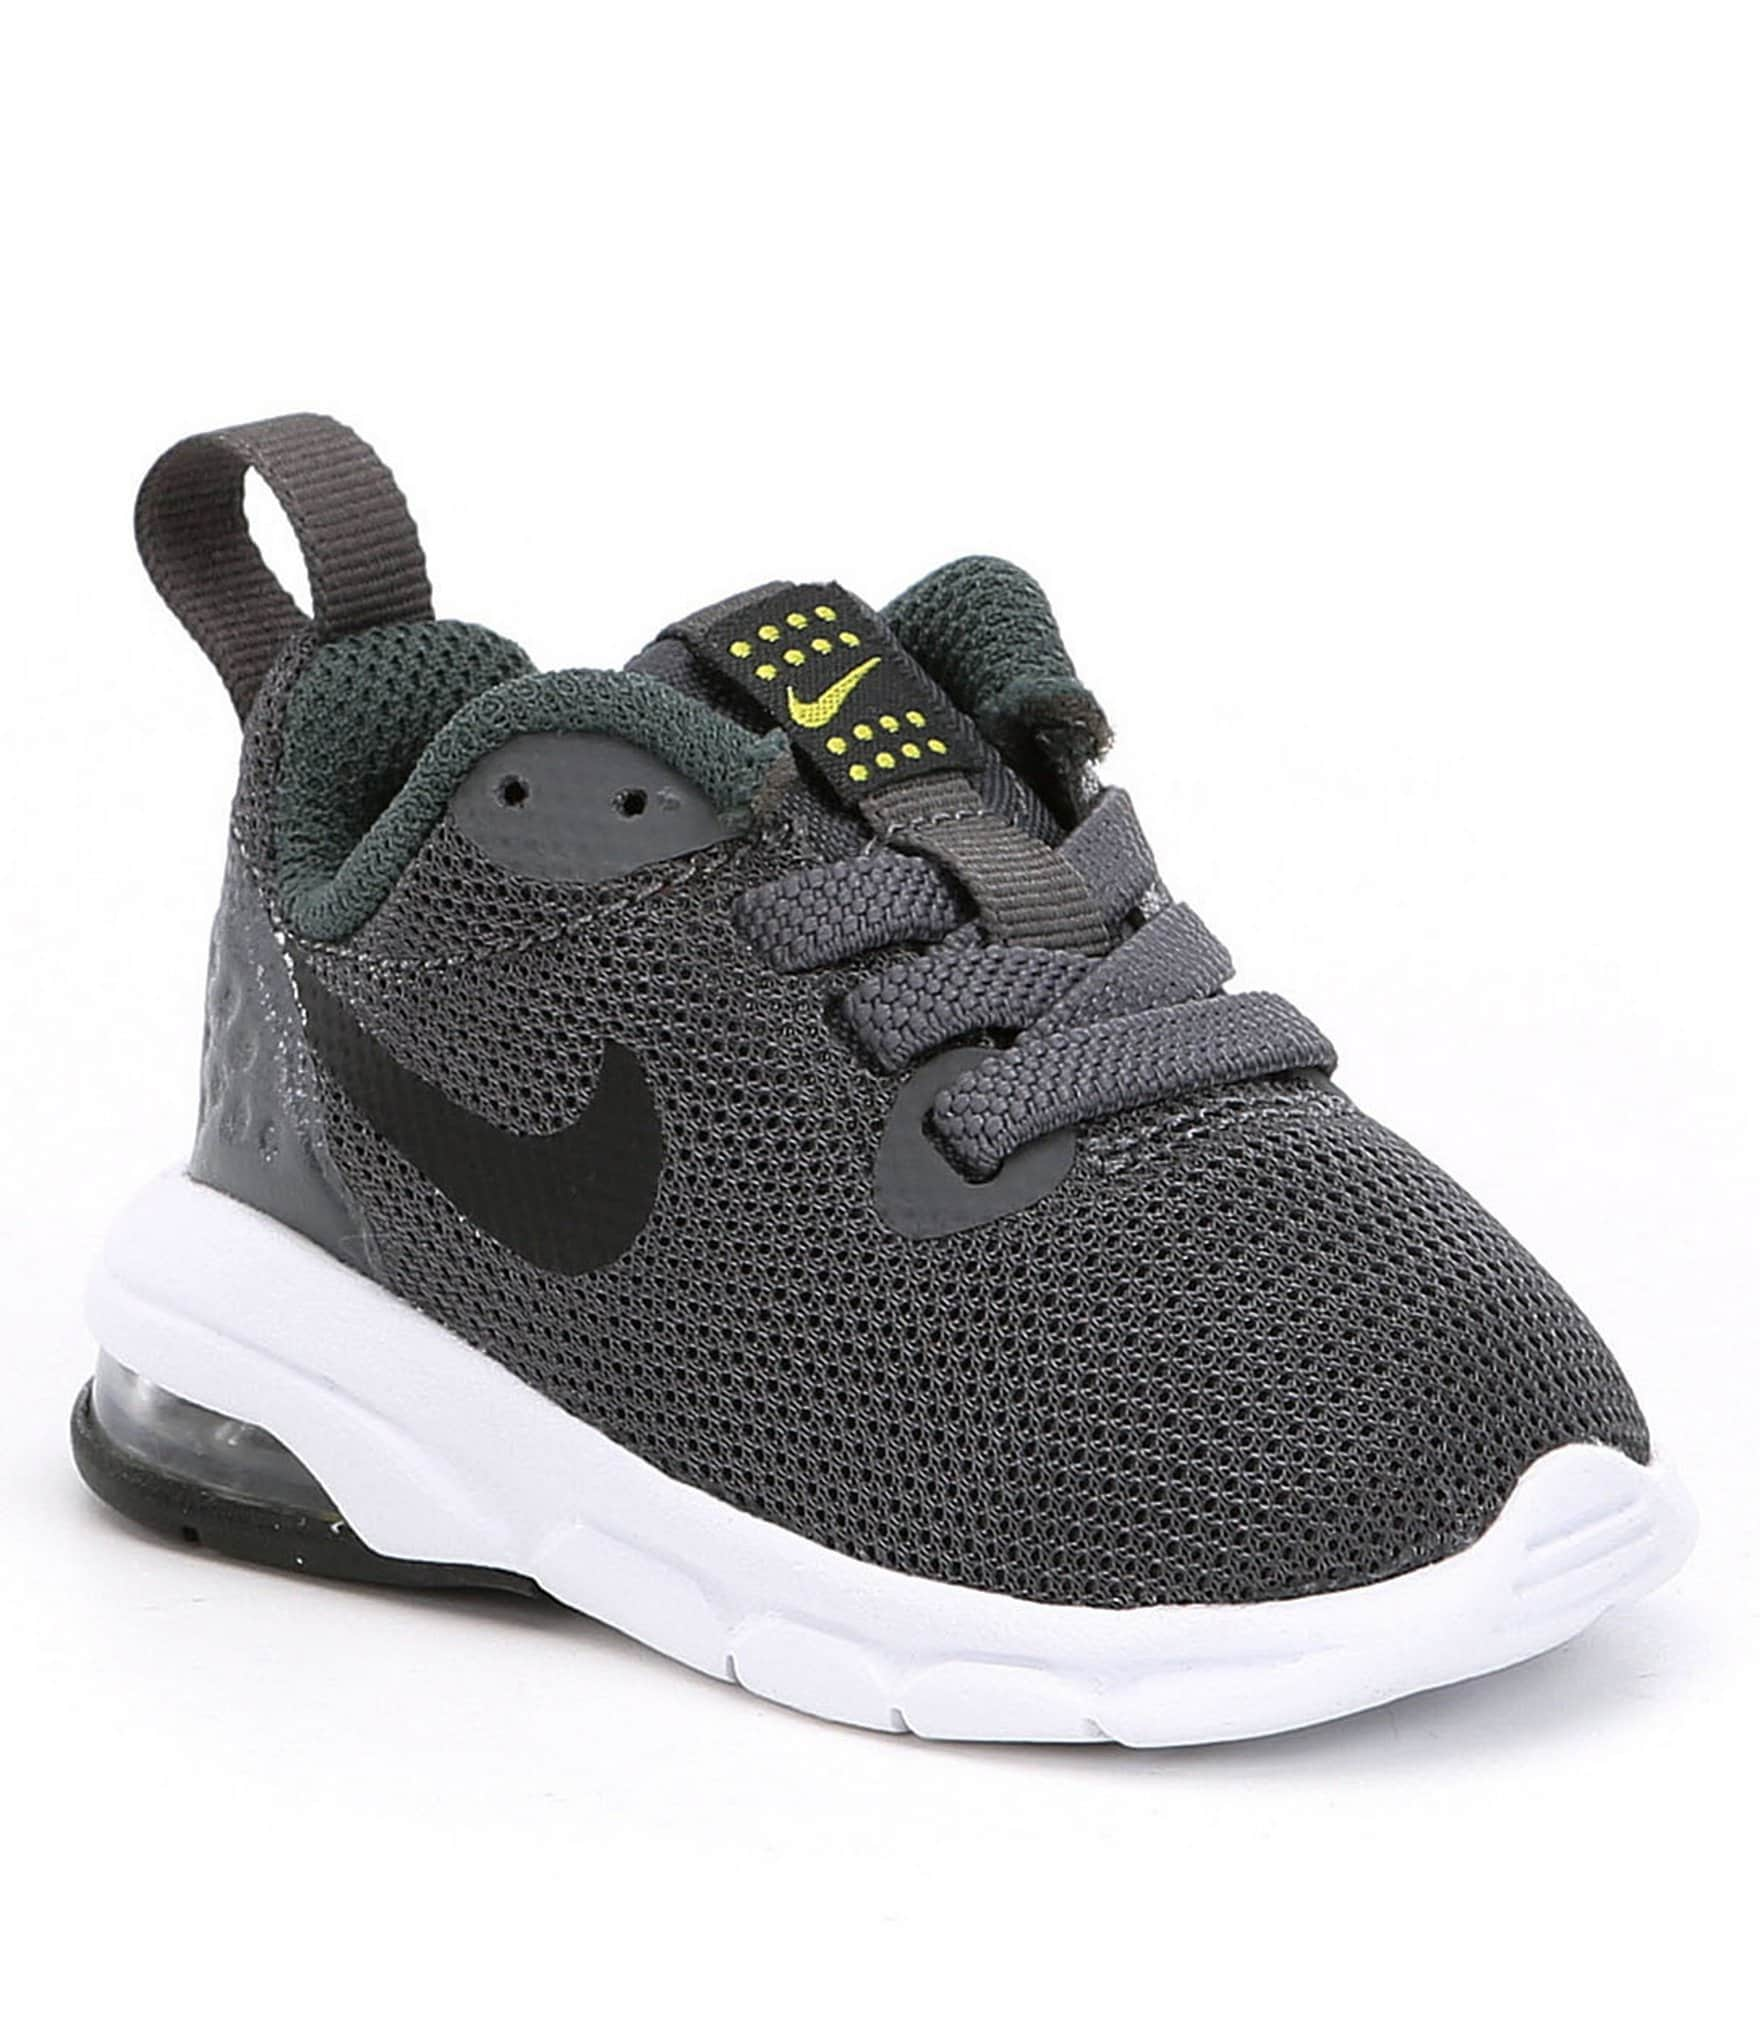 bdfd21d7e32 ... czech nike airmax shoes for women men kids dillards 3ce37 fc0d2